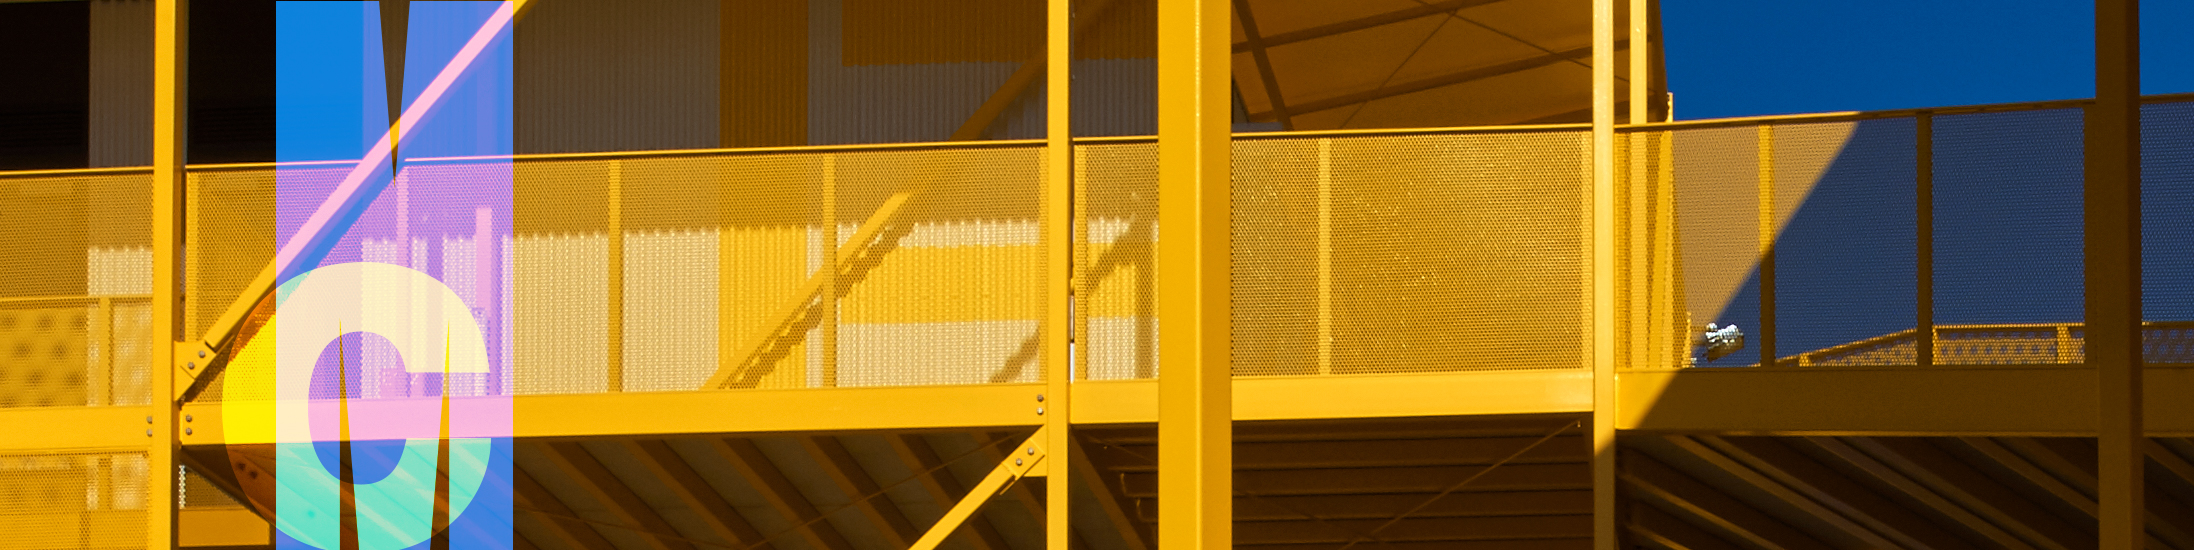 architecture yellow. art design and architecture yellow